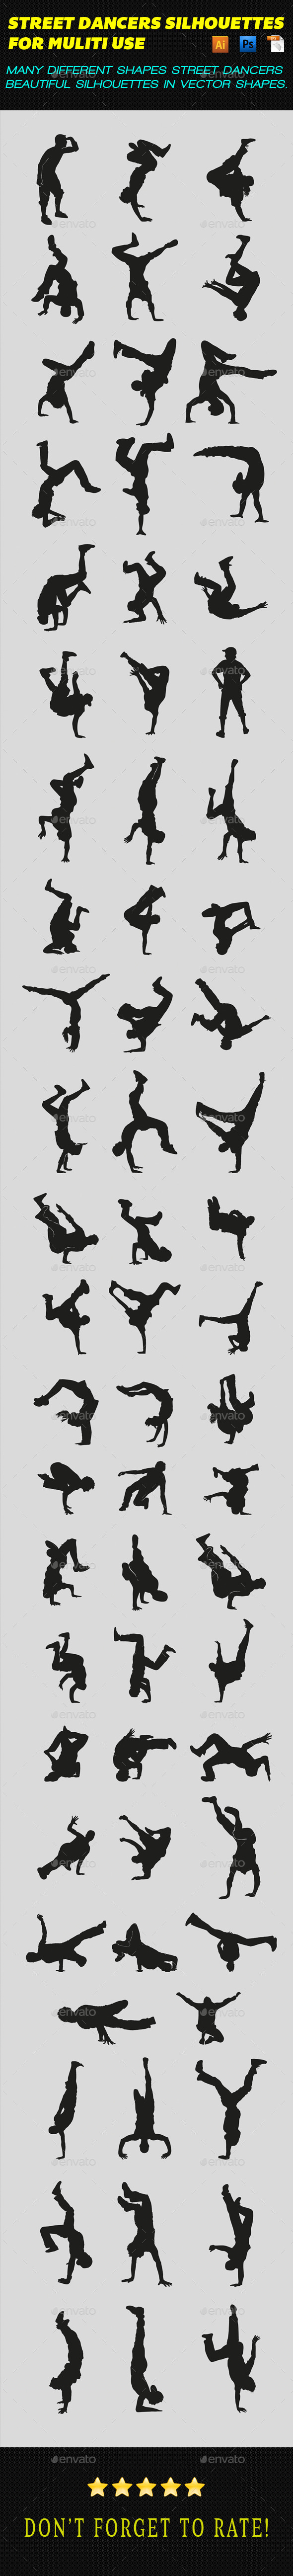 Street Dancers Silhouettes - People Characters